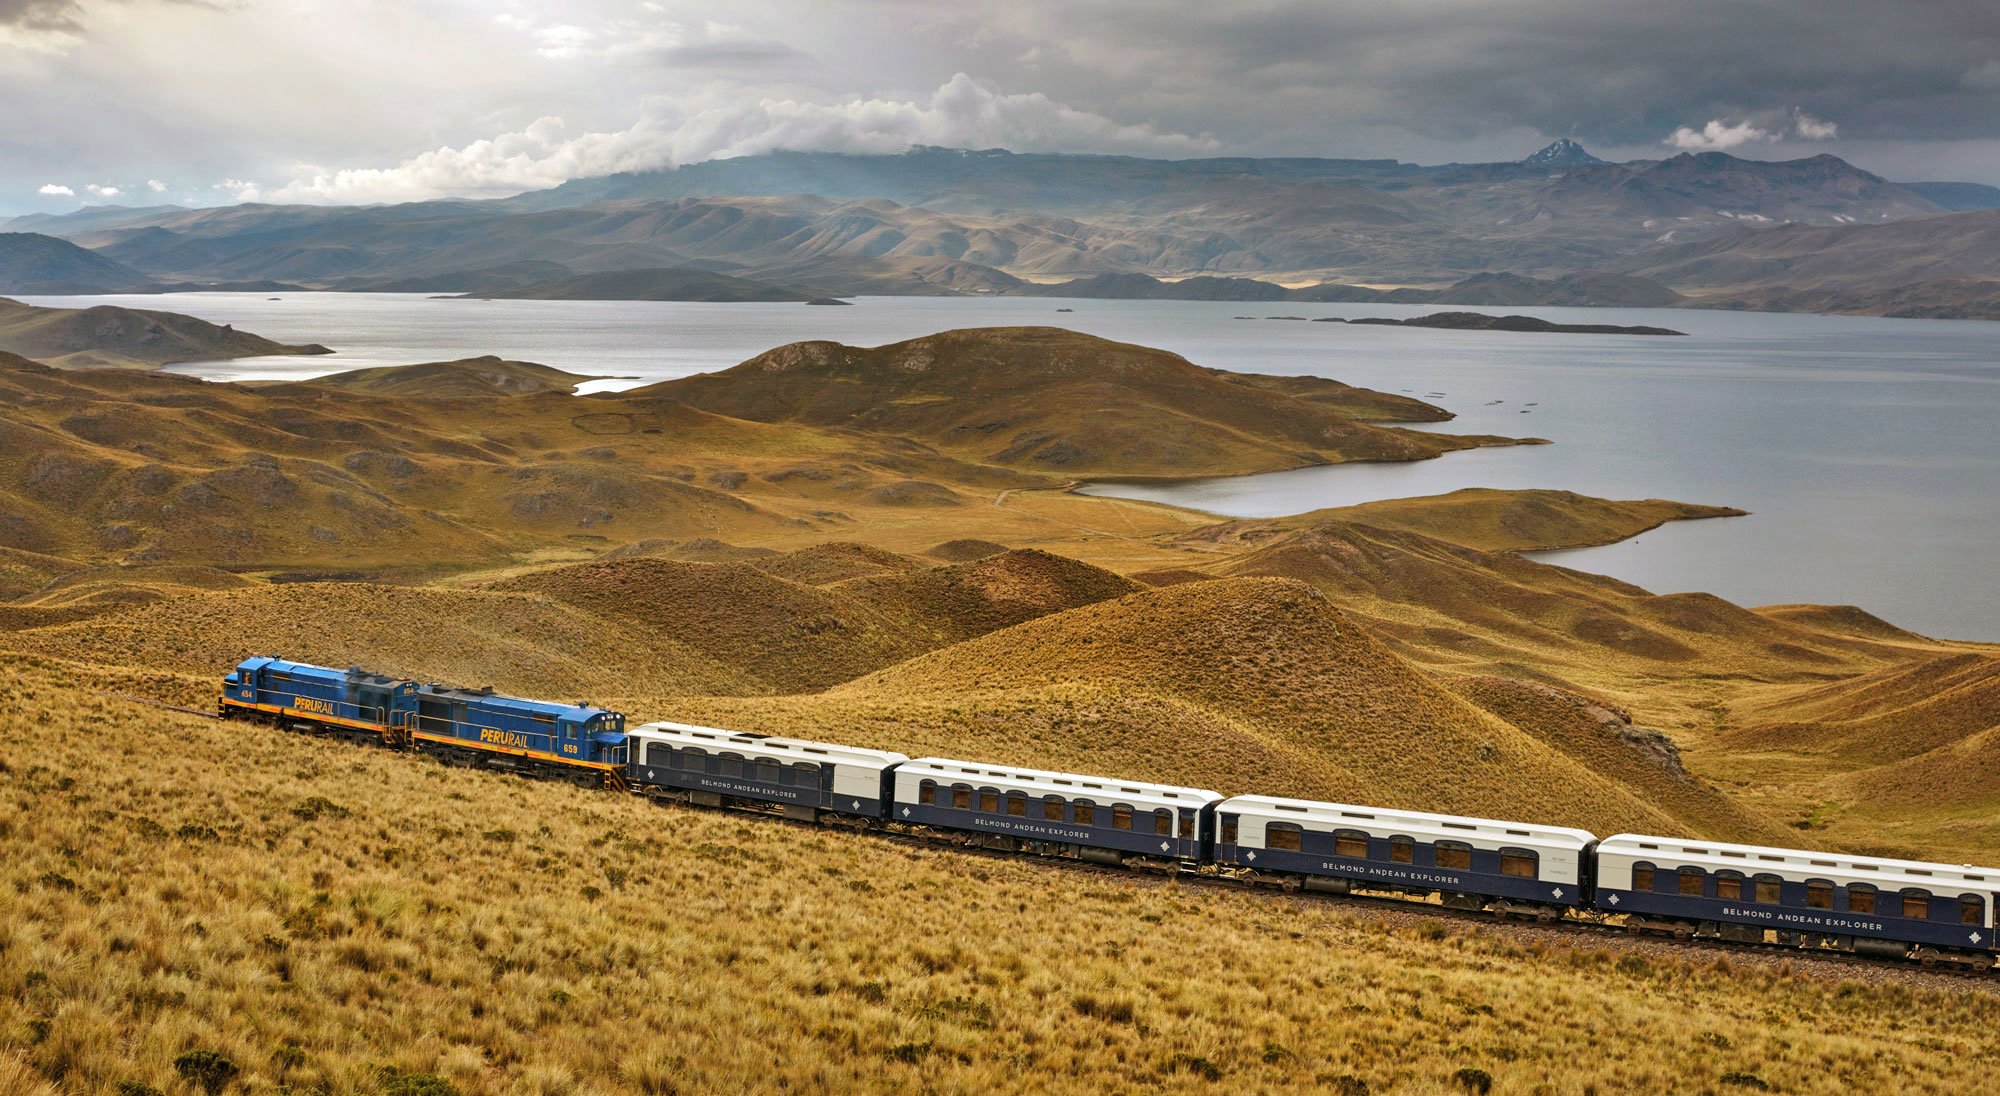 Andean Explorer Train between Arequipa and Juliaca